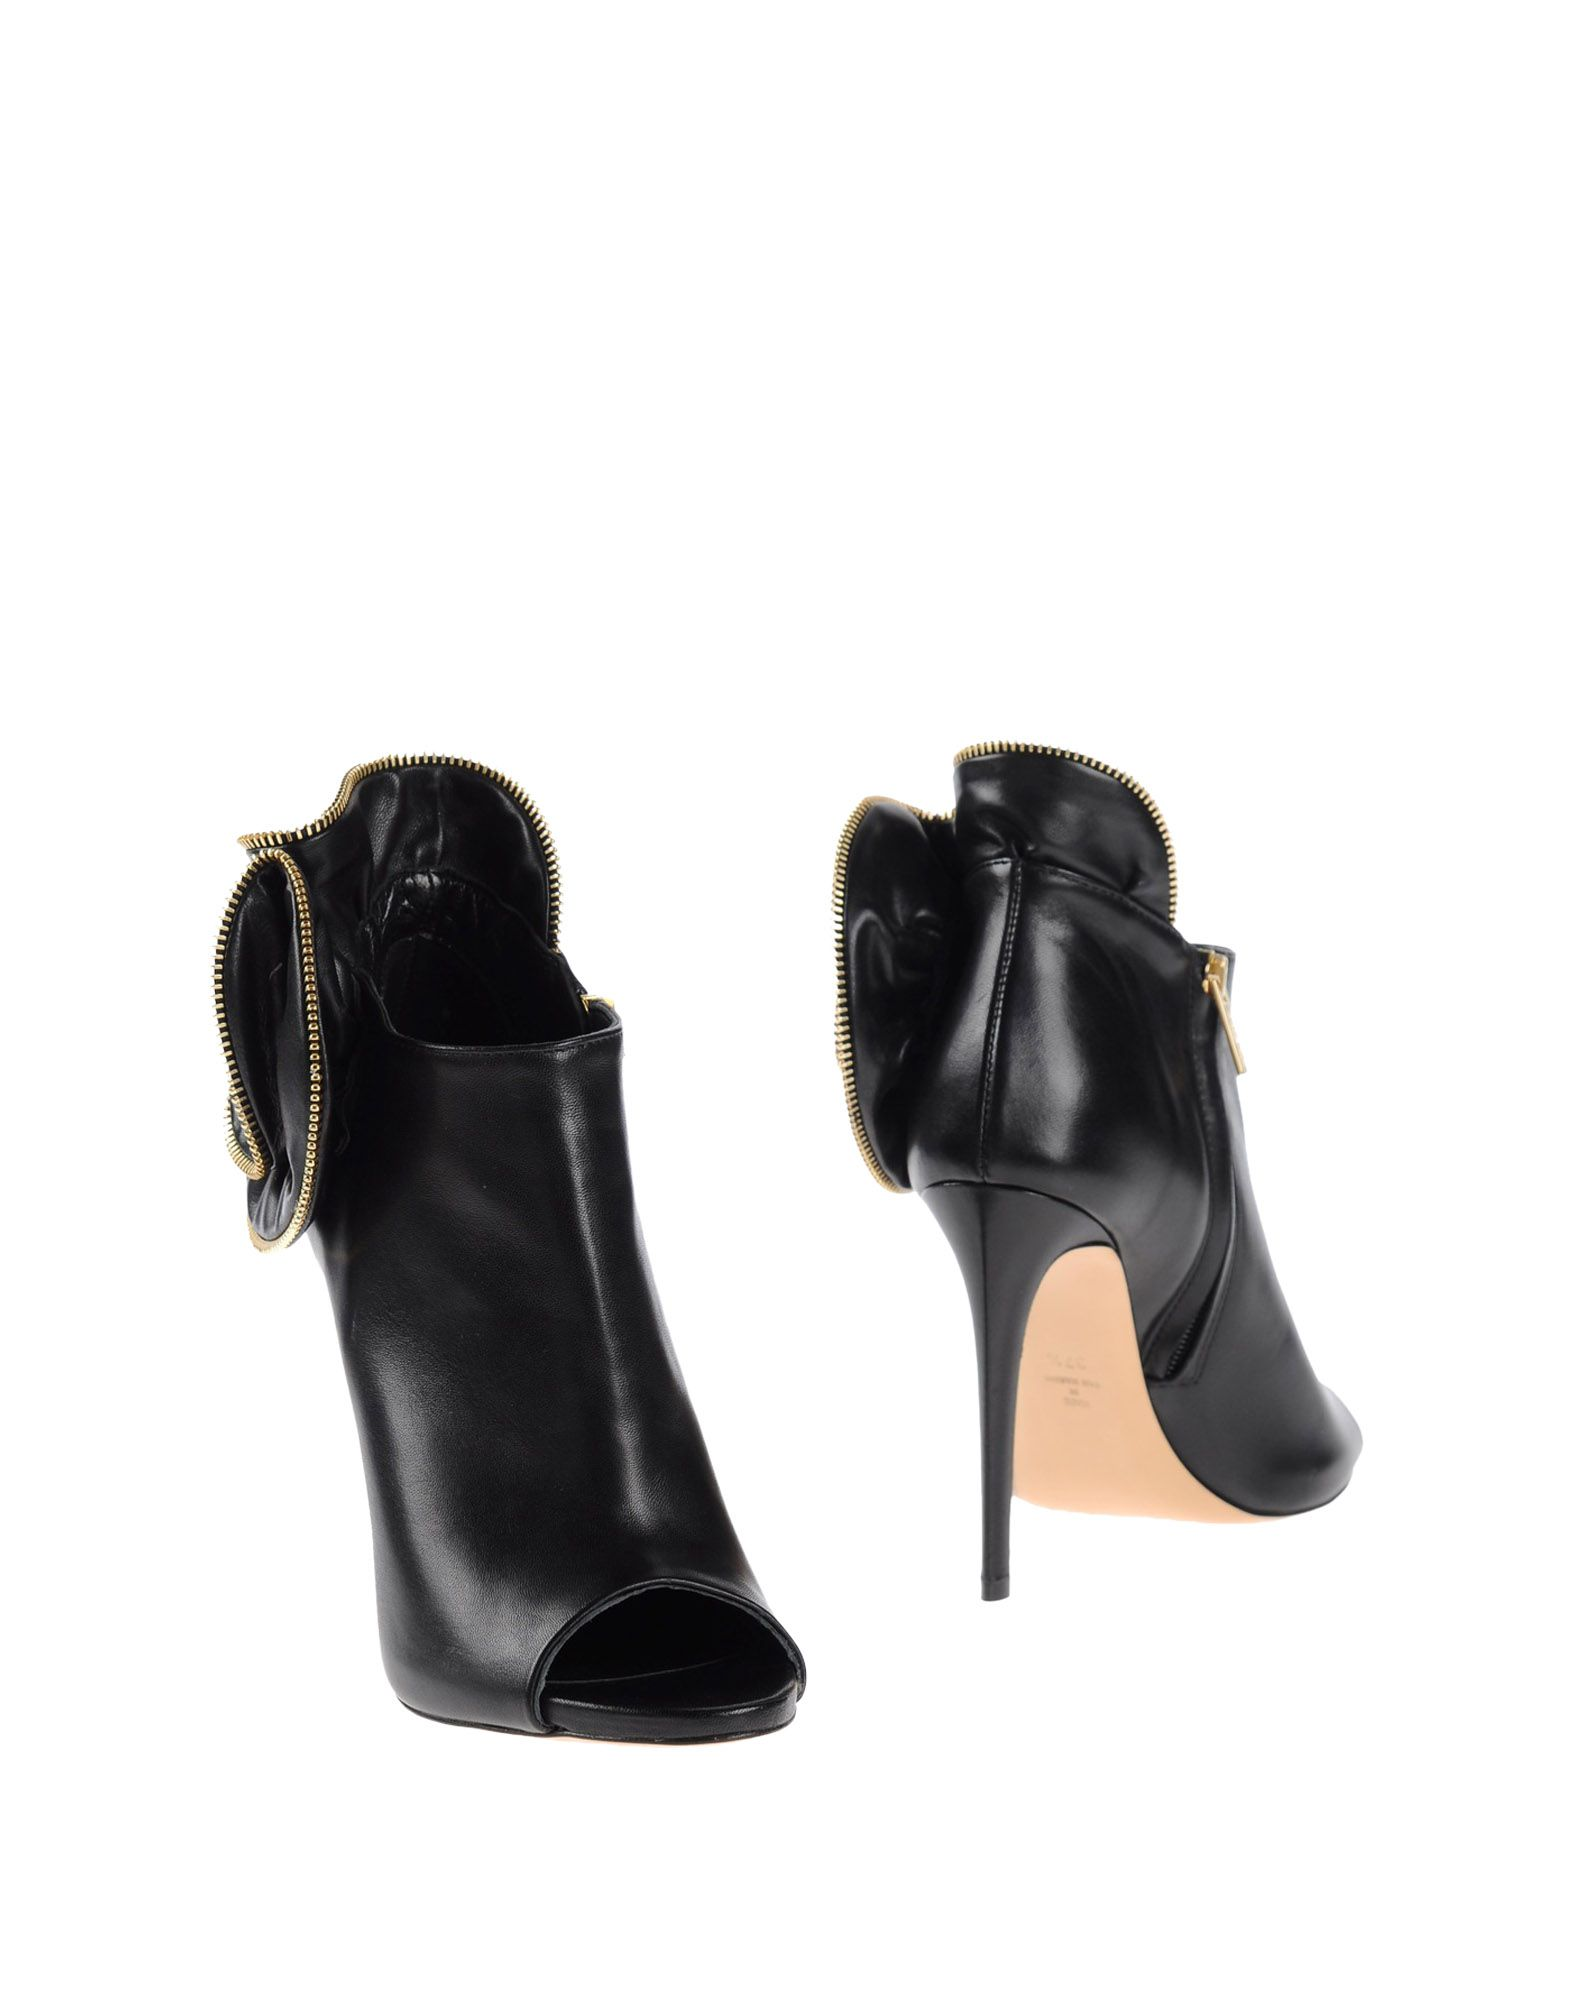 NINALILOU Ankle Boot in Black